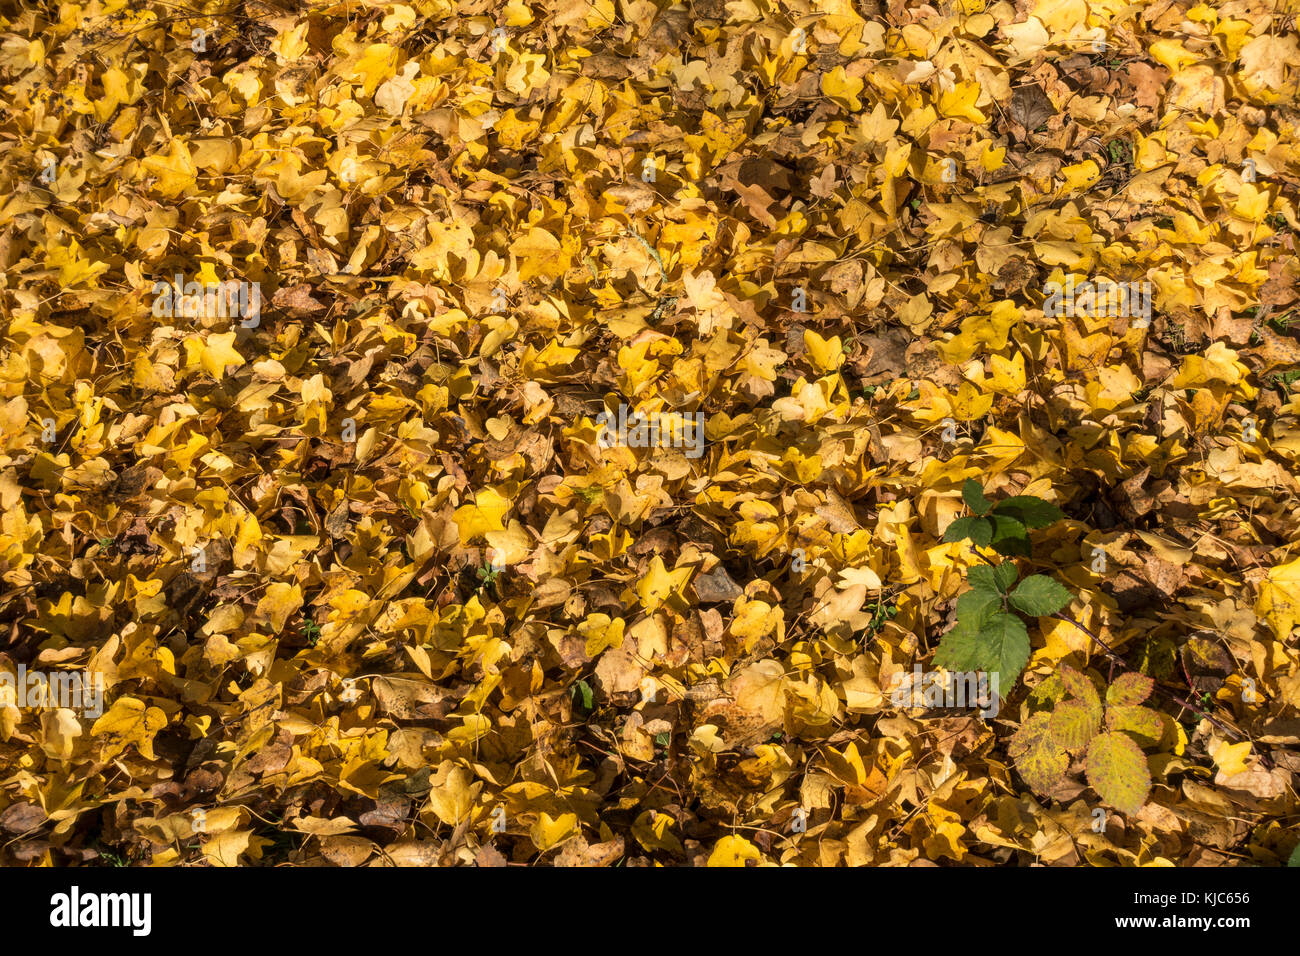 yellow-leaf-carpet-in-autumn-with-touch-